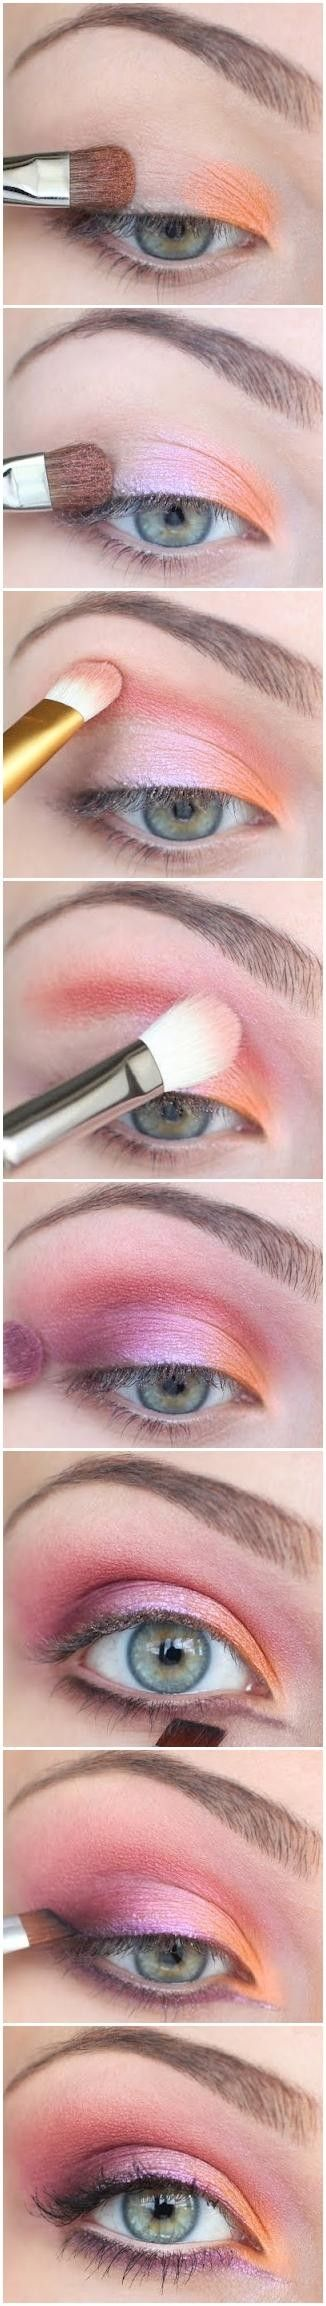 orange and pink eye makeup